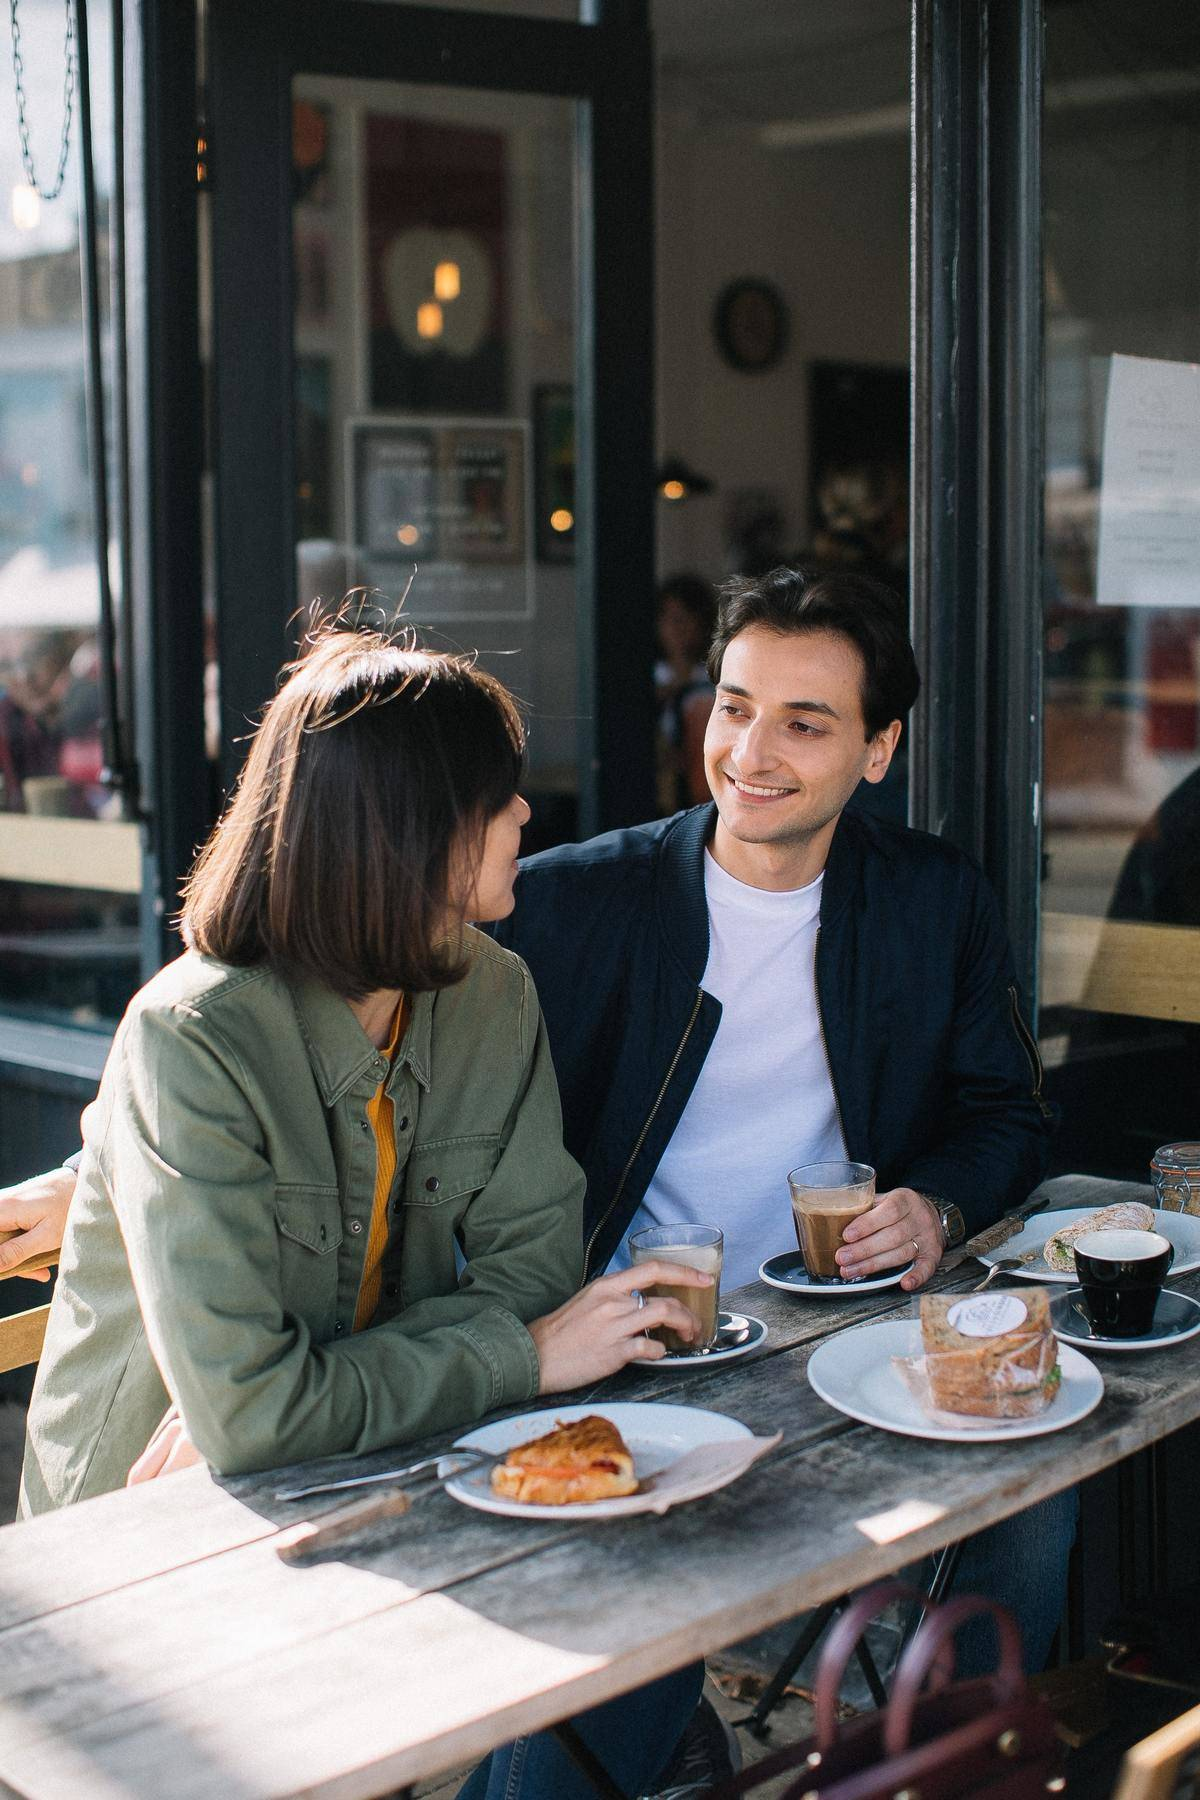 Couple at table talking over coffee